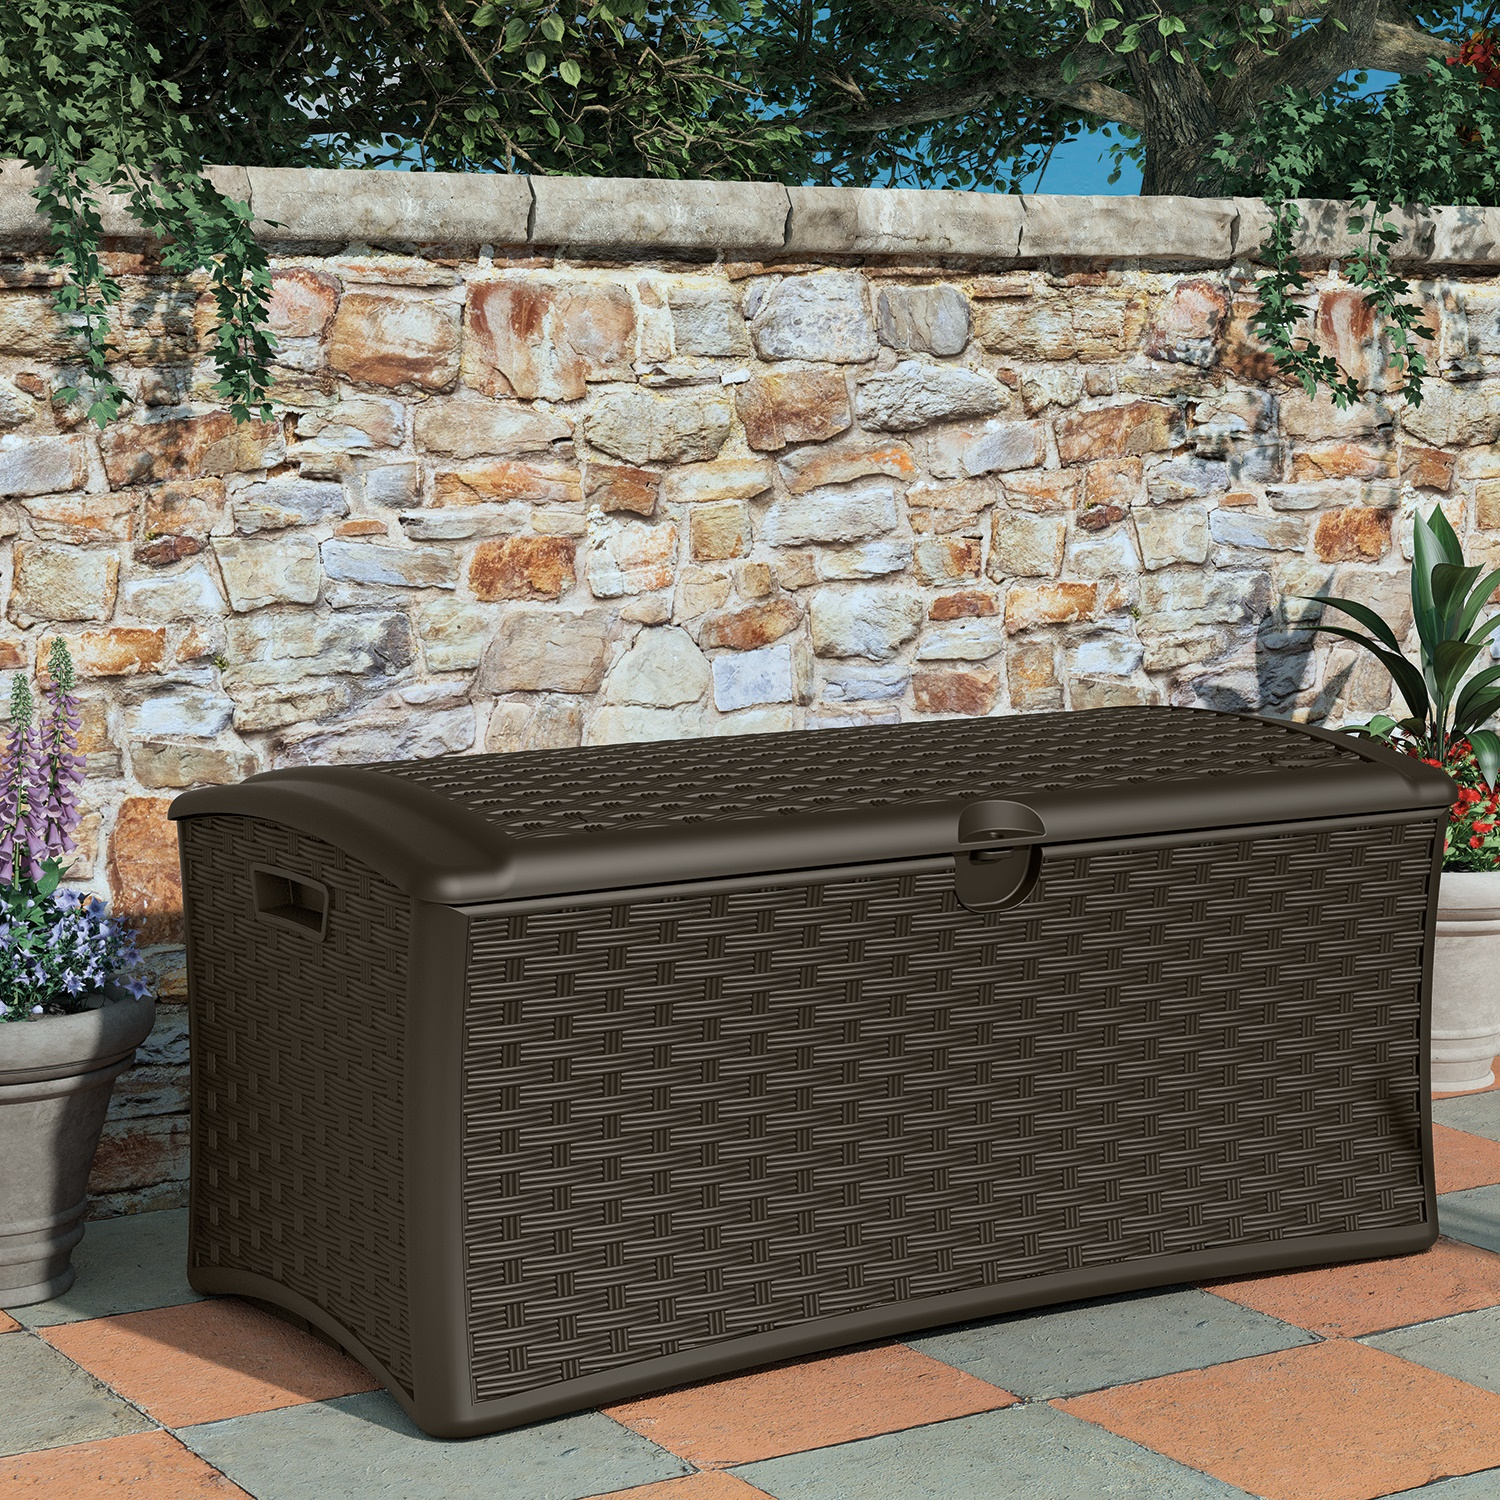 BillyOh Suncast 265 litre Deck Box Plastic Storage Bench